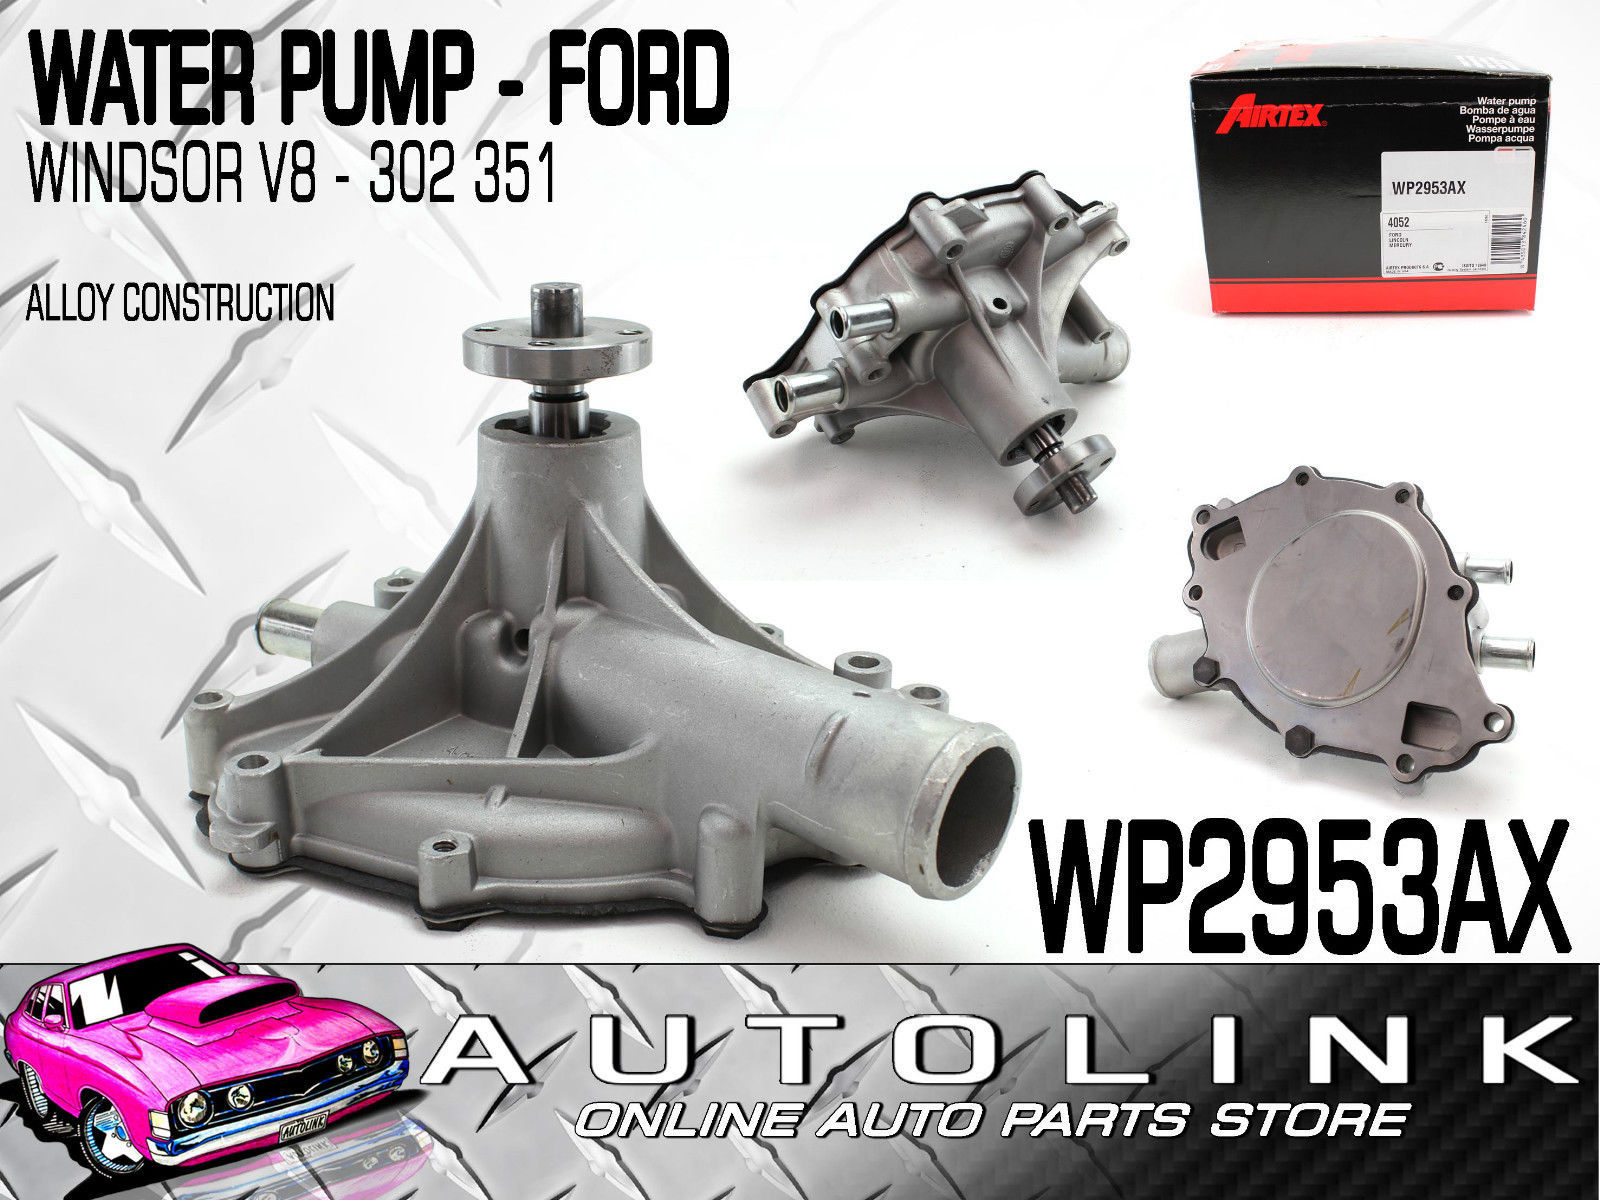 hight resolution of water pump suit ford falcon sedan wagon xw 302 351 windsor v8 lh water outlet airtex